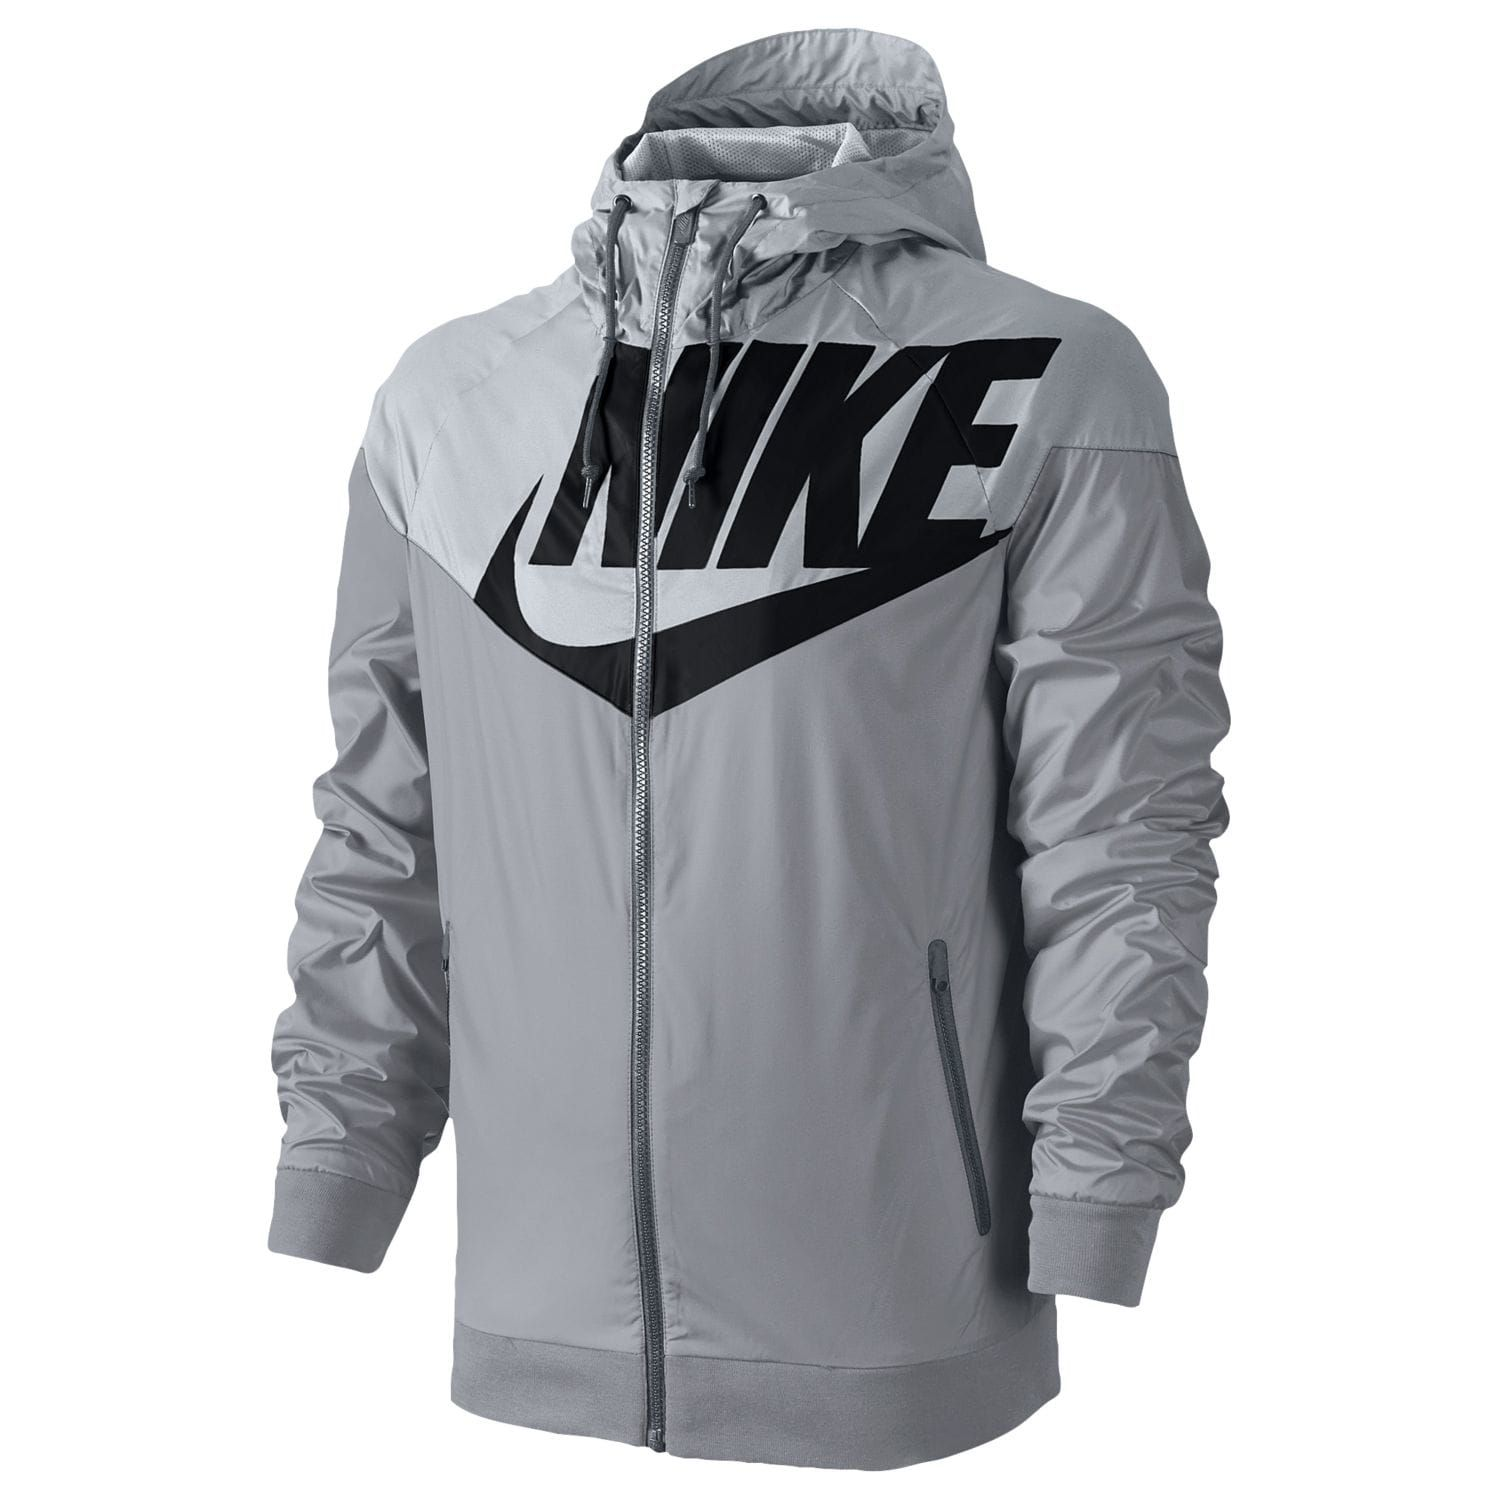 White | Nike windrunner, Casual outfits